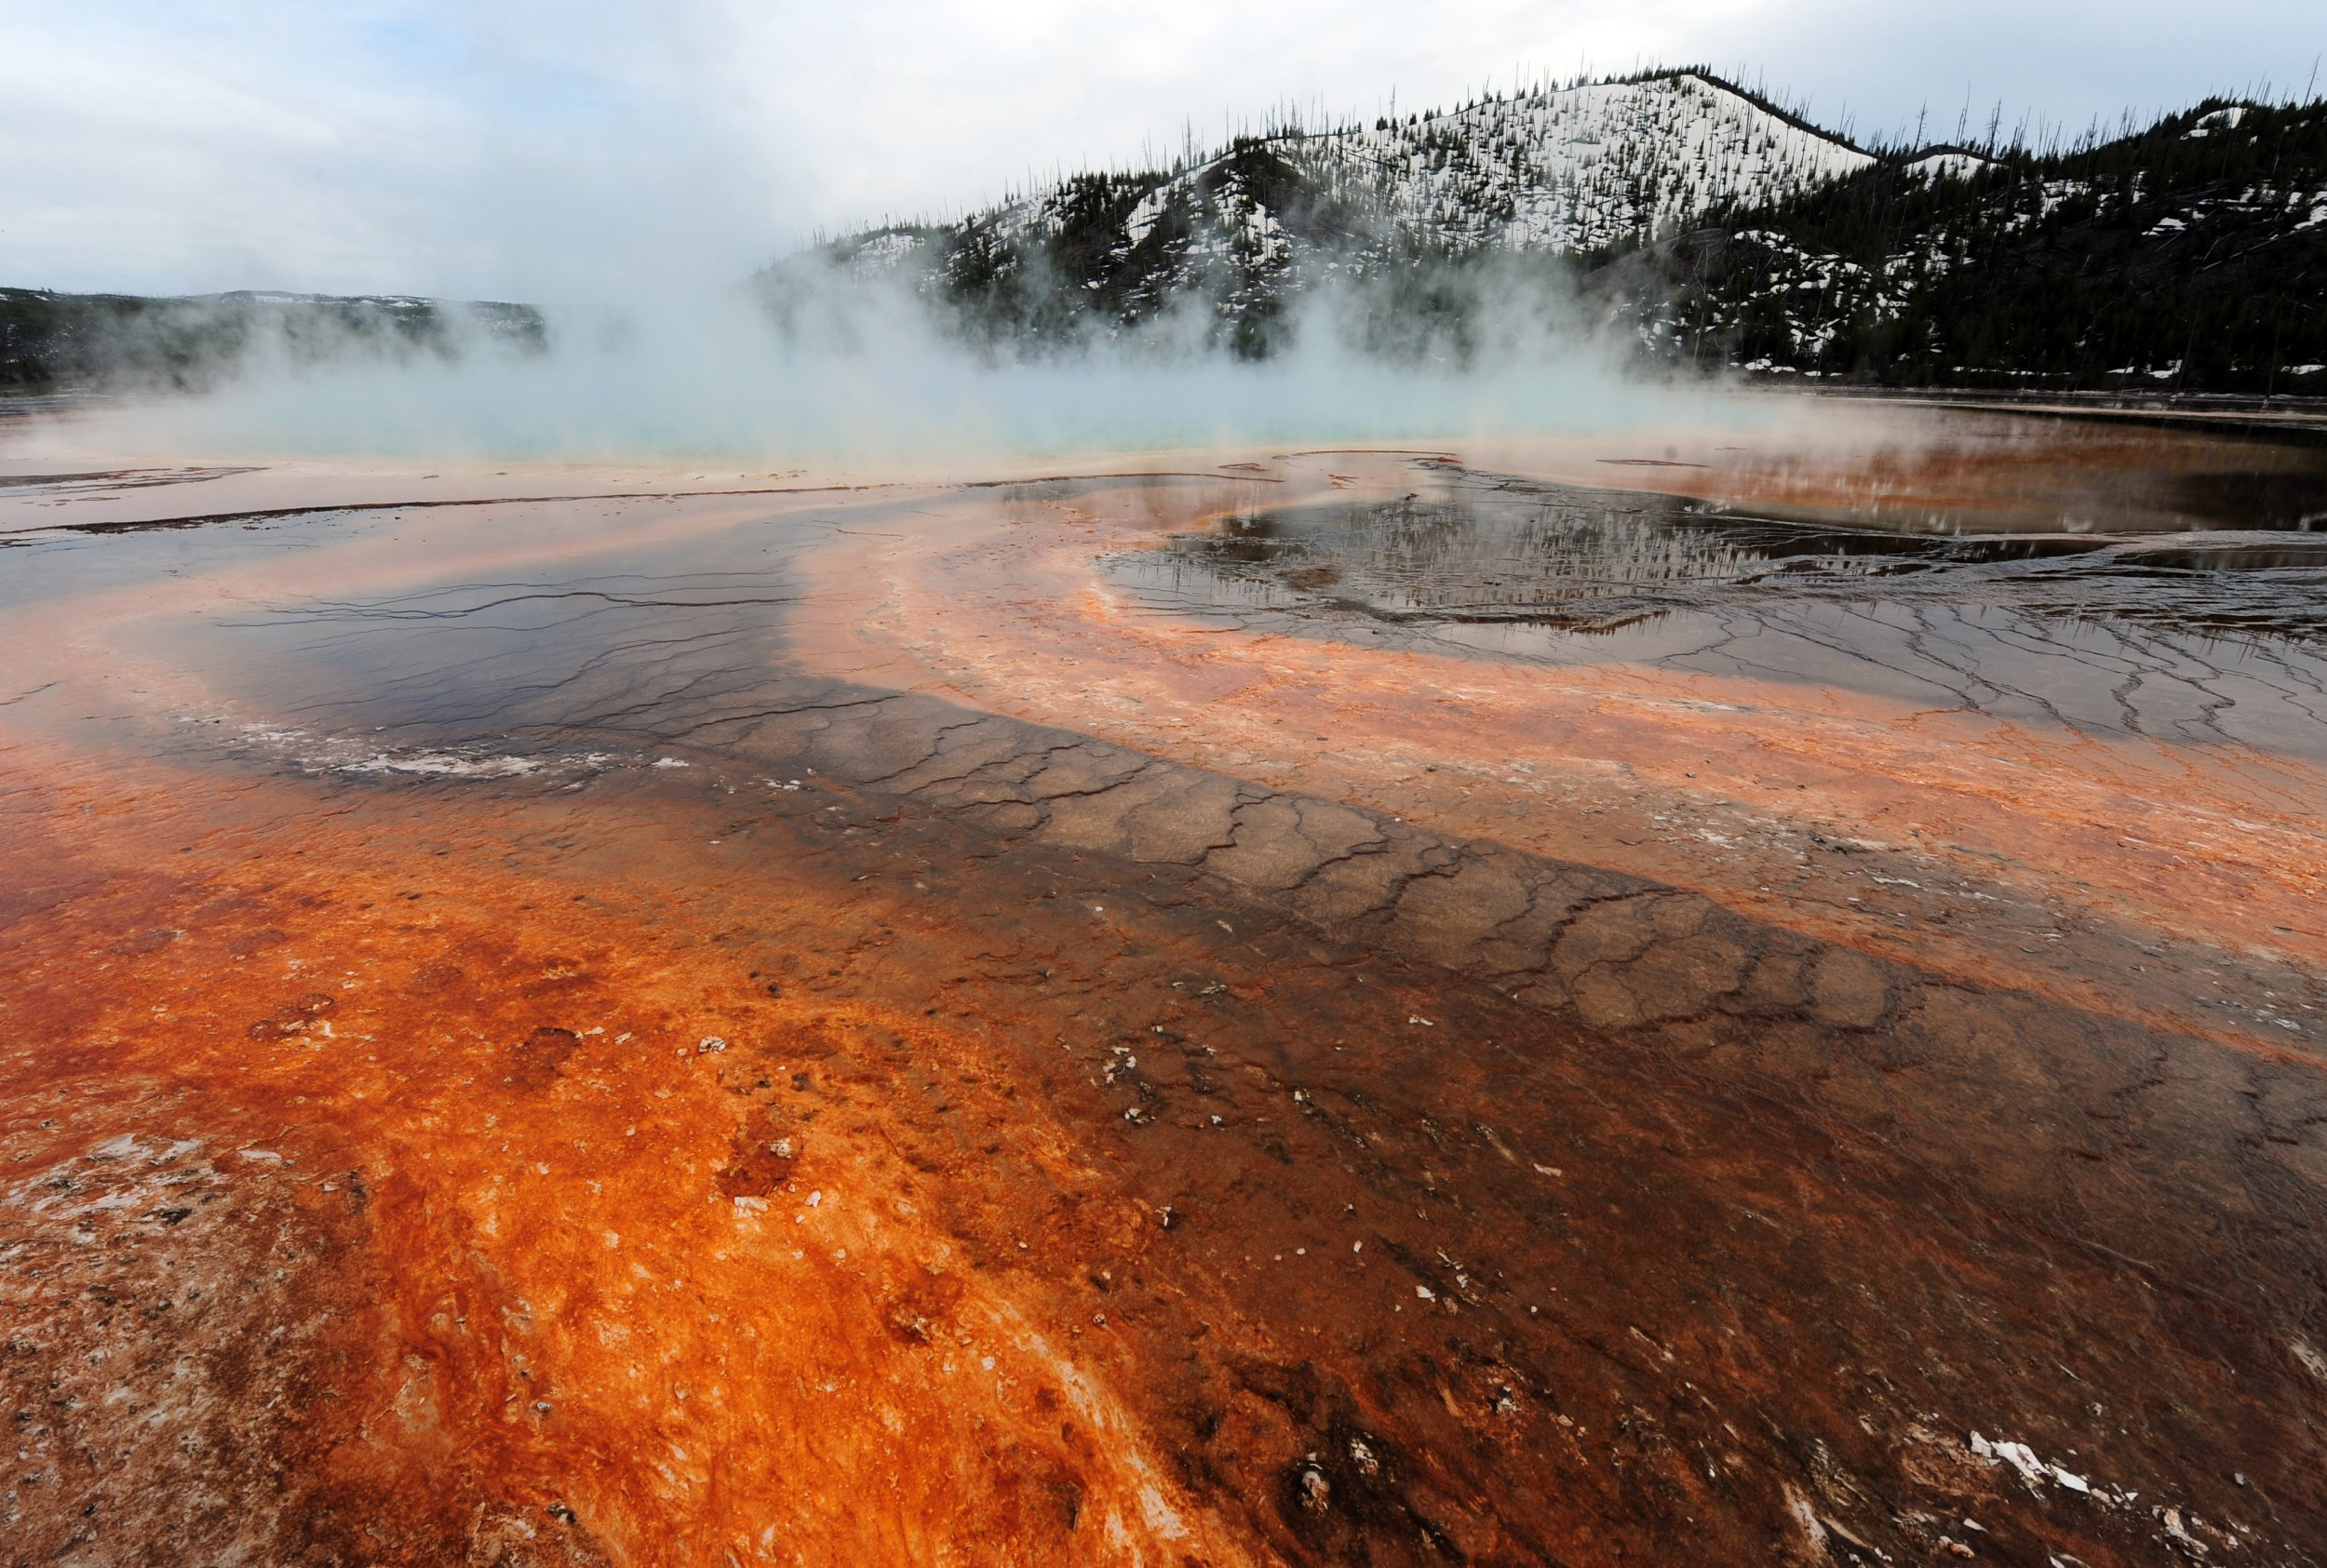 Yellowstone supervolcano has just been hit by more than 230 earthquakes in one week